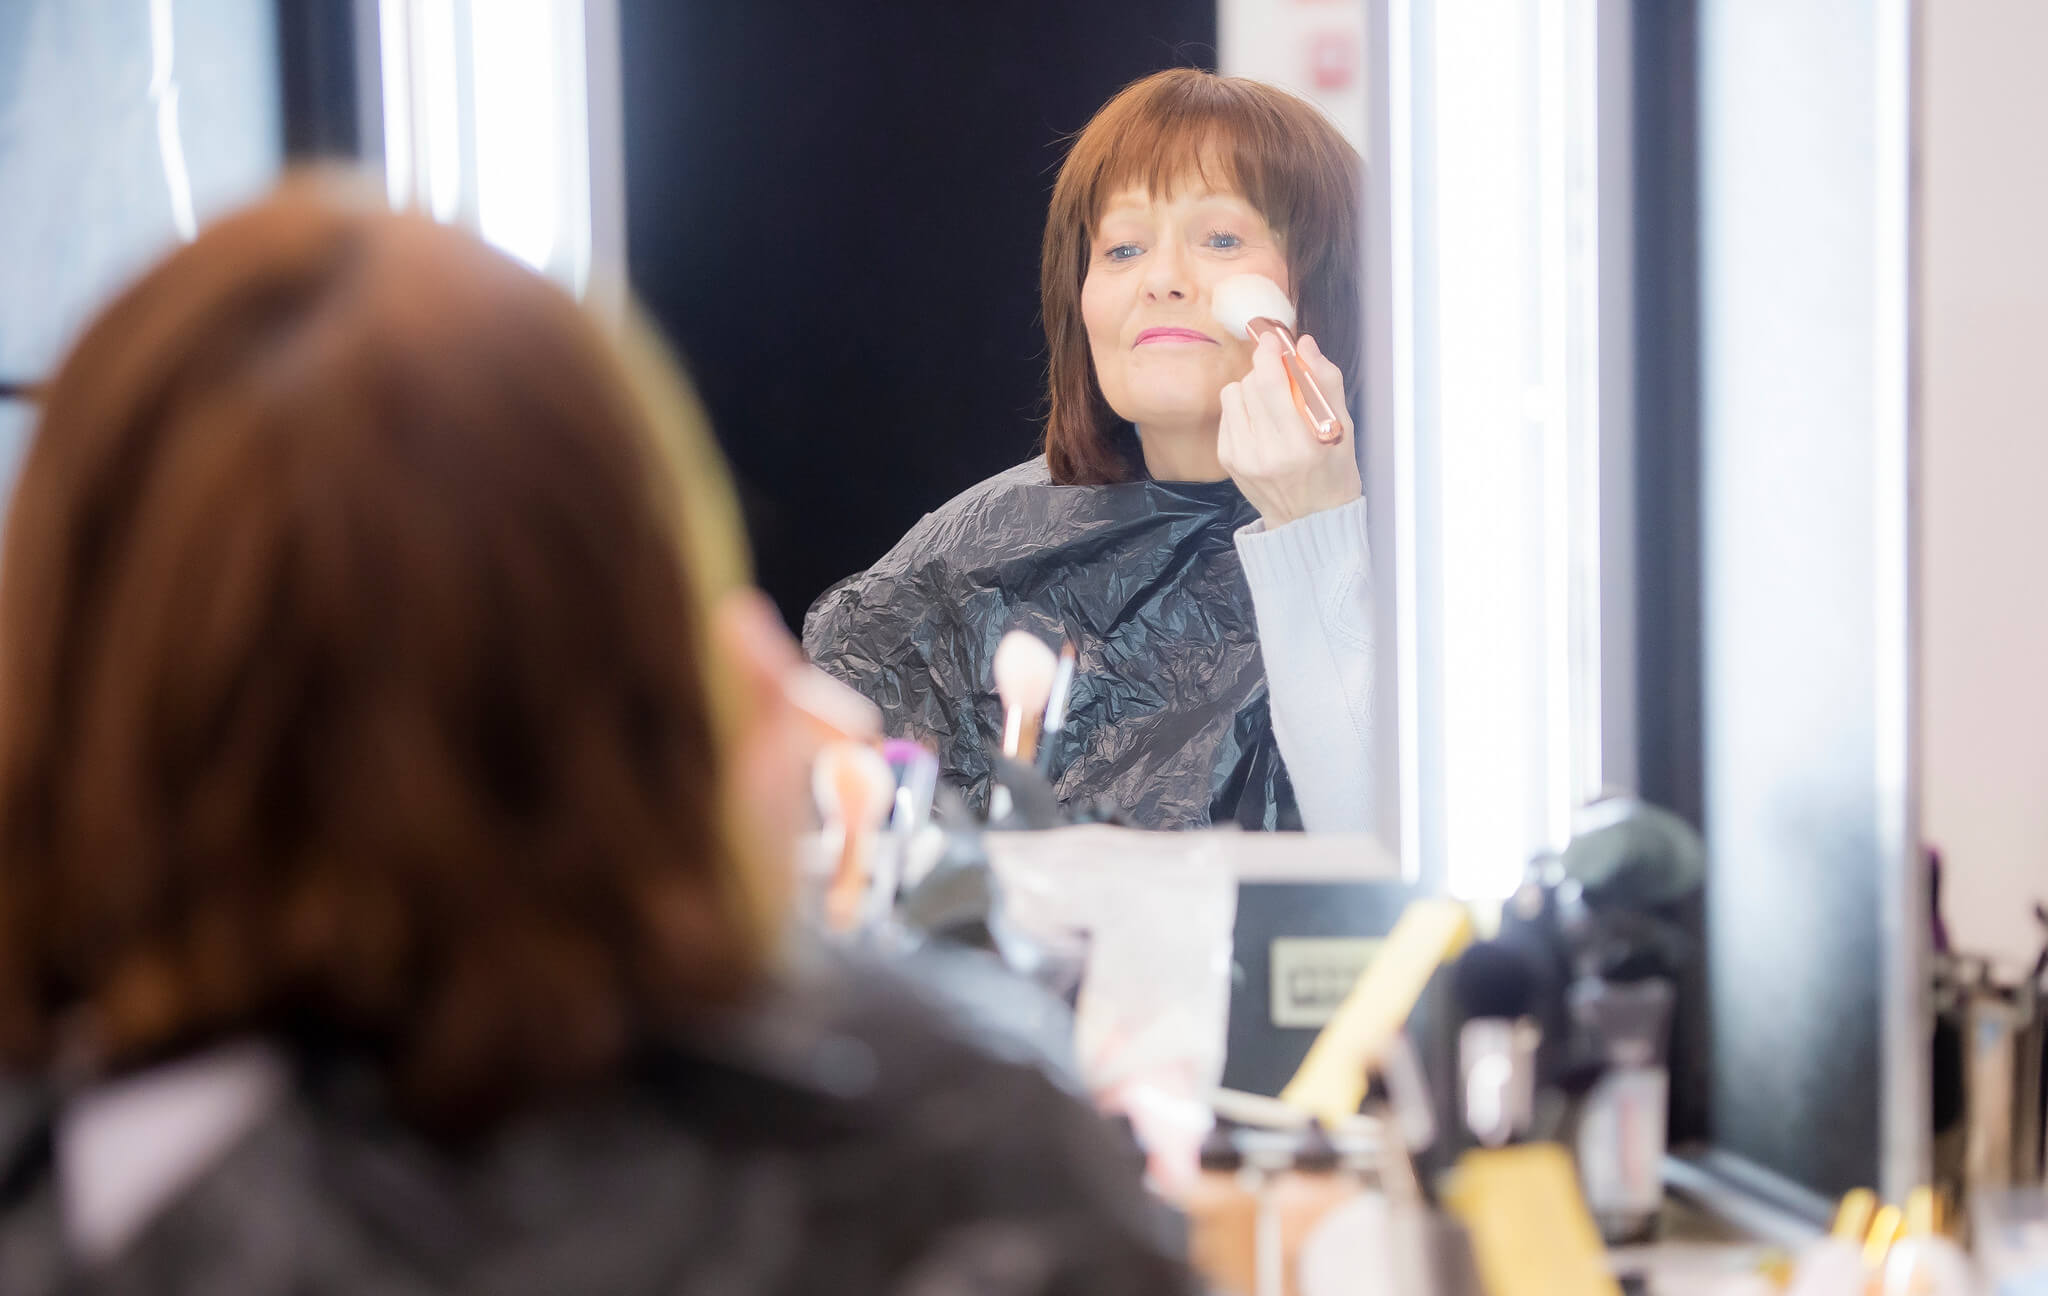 Rehearsal image for Fibres films showing Maureen Carr doing makeup in front of a mirror